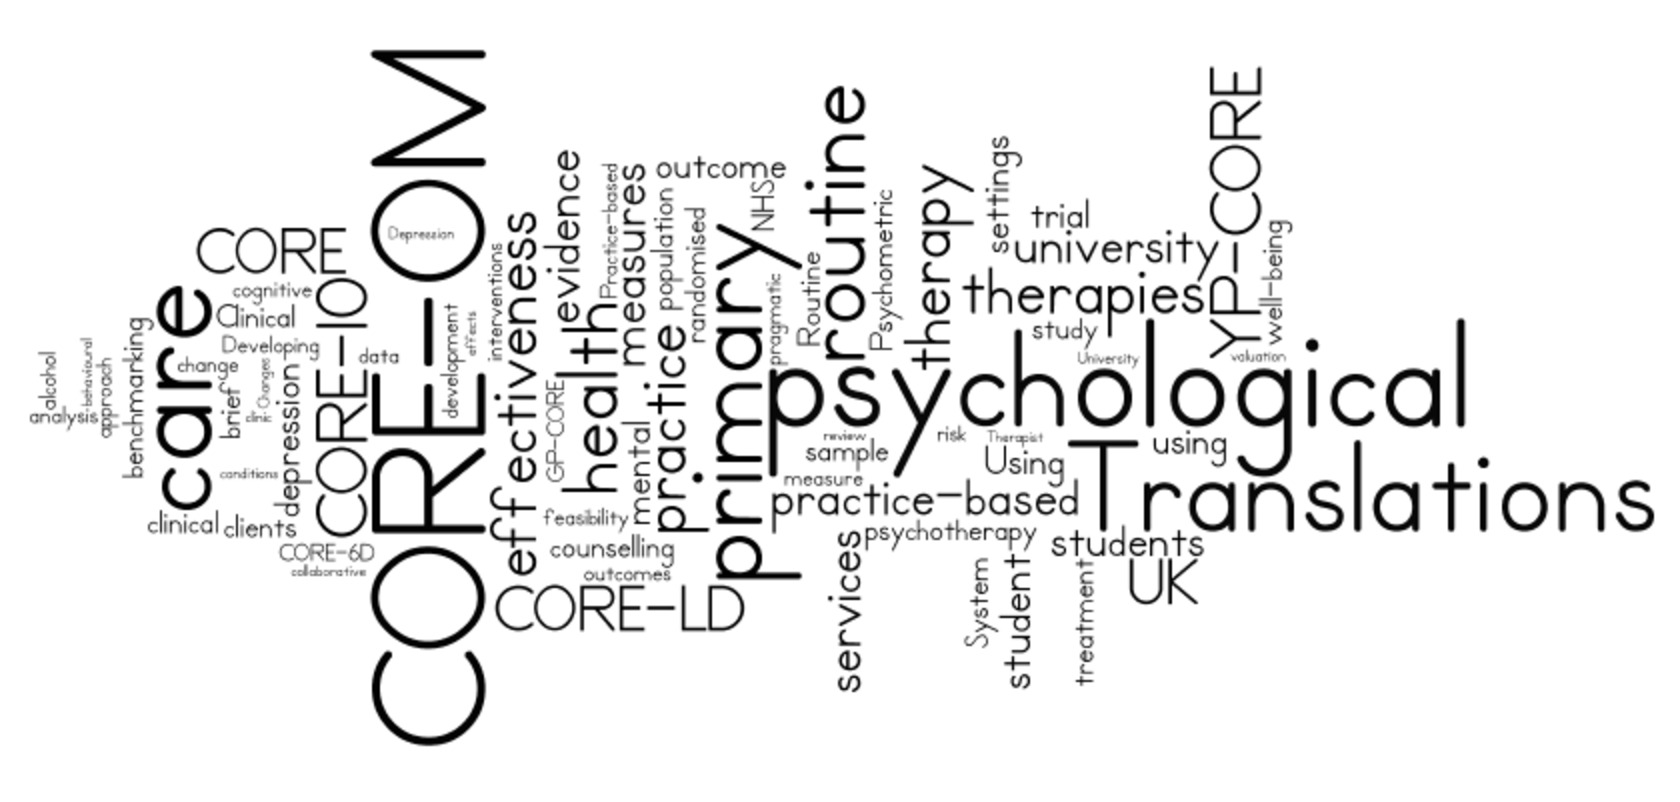 CORE-wordle3